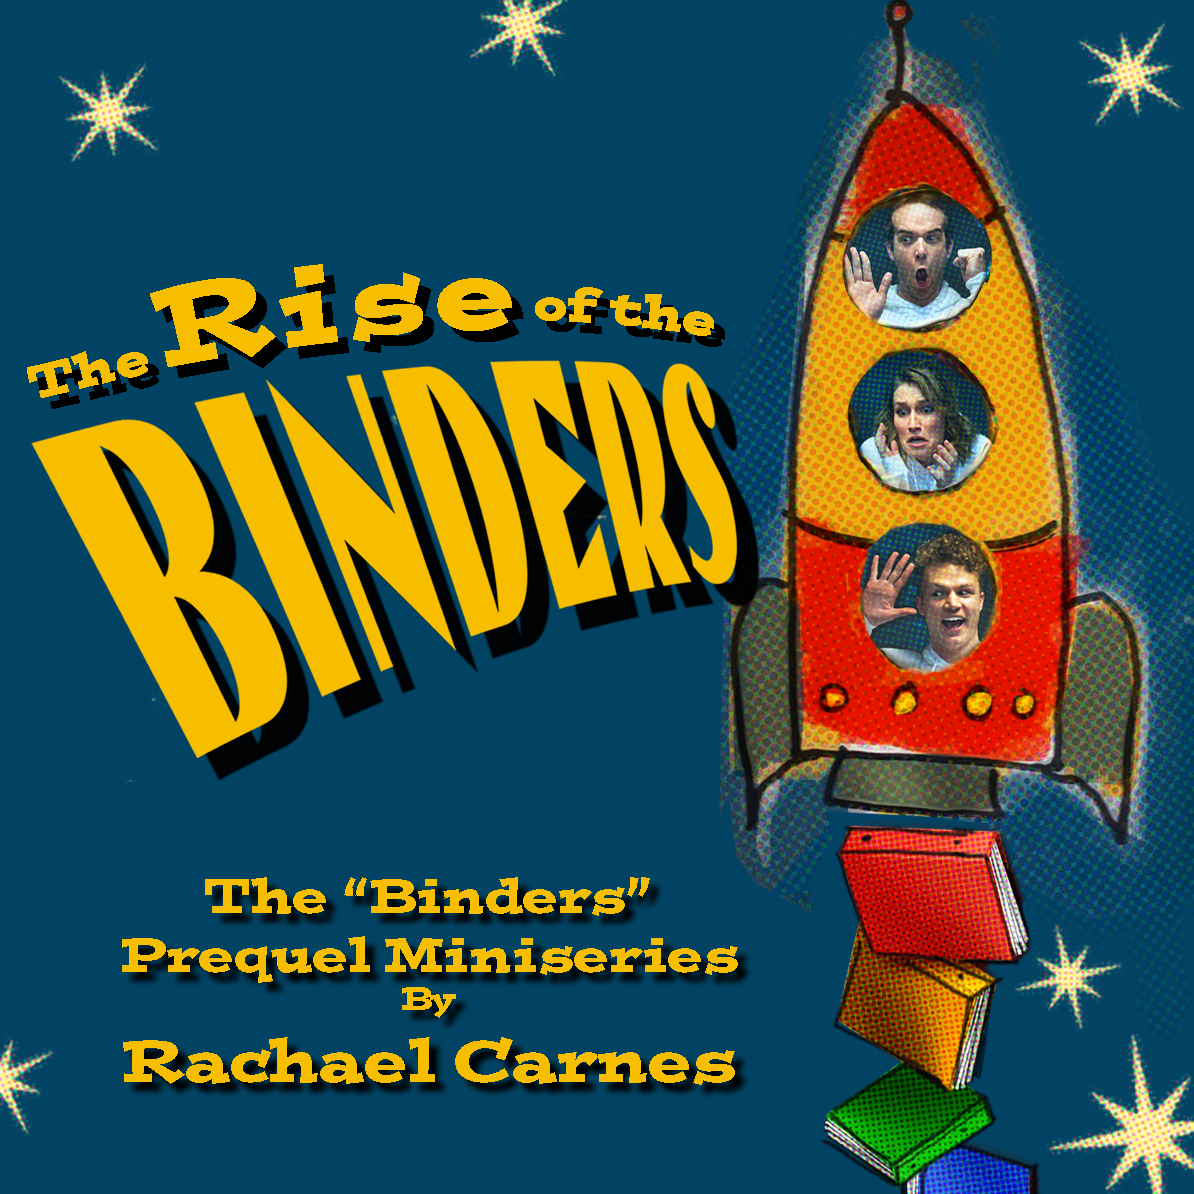 Rise of the Binders